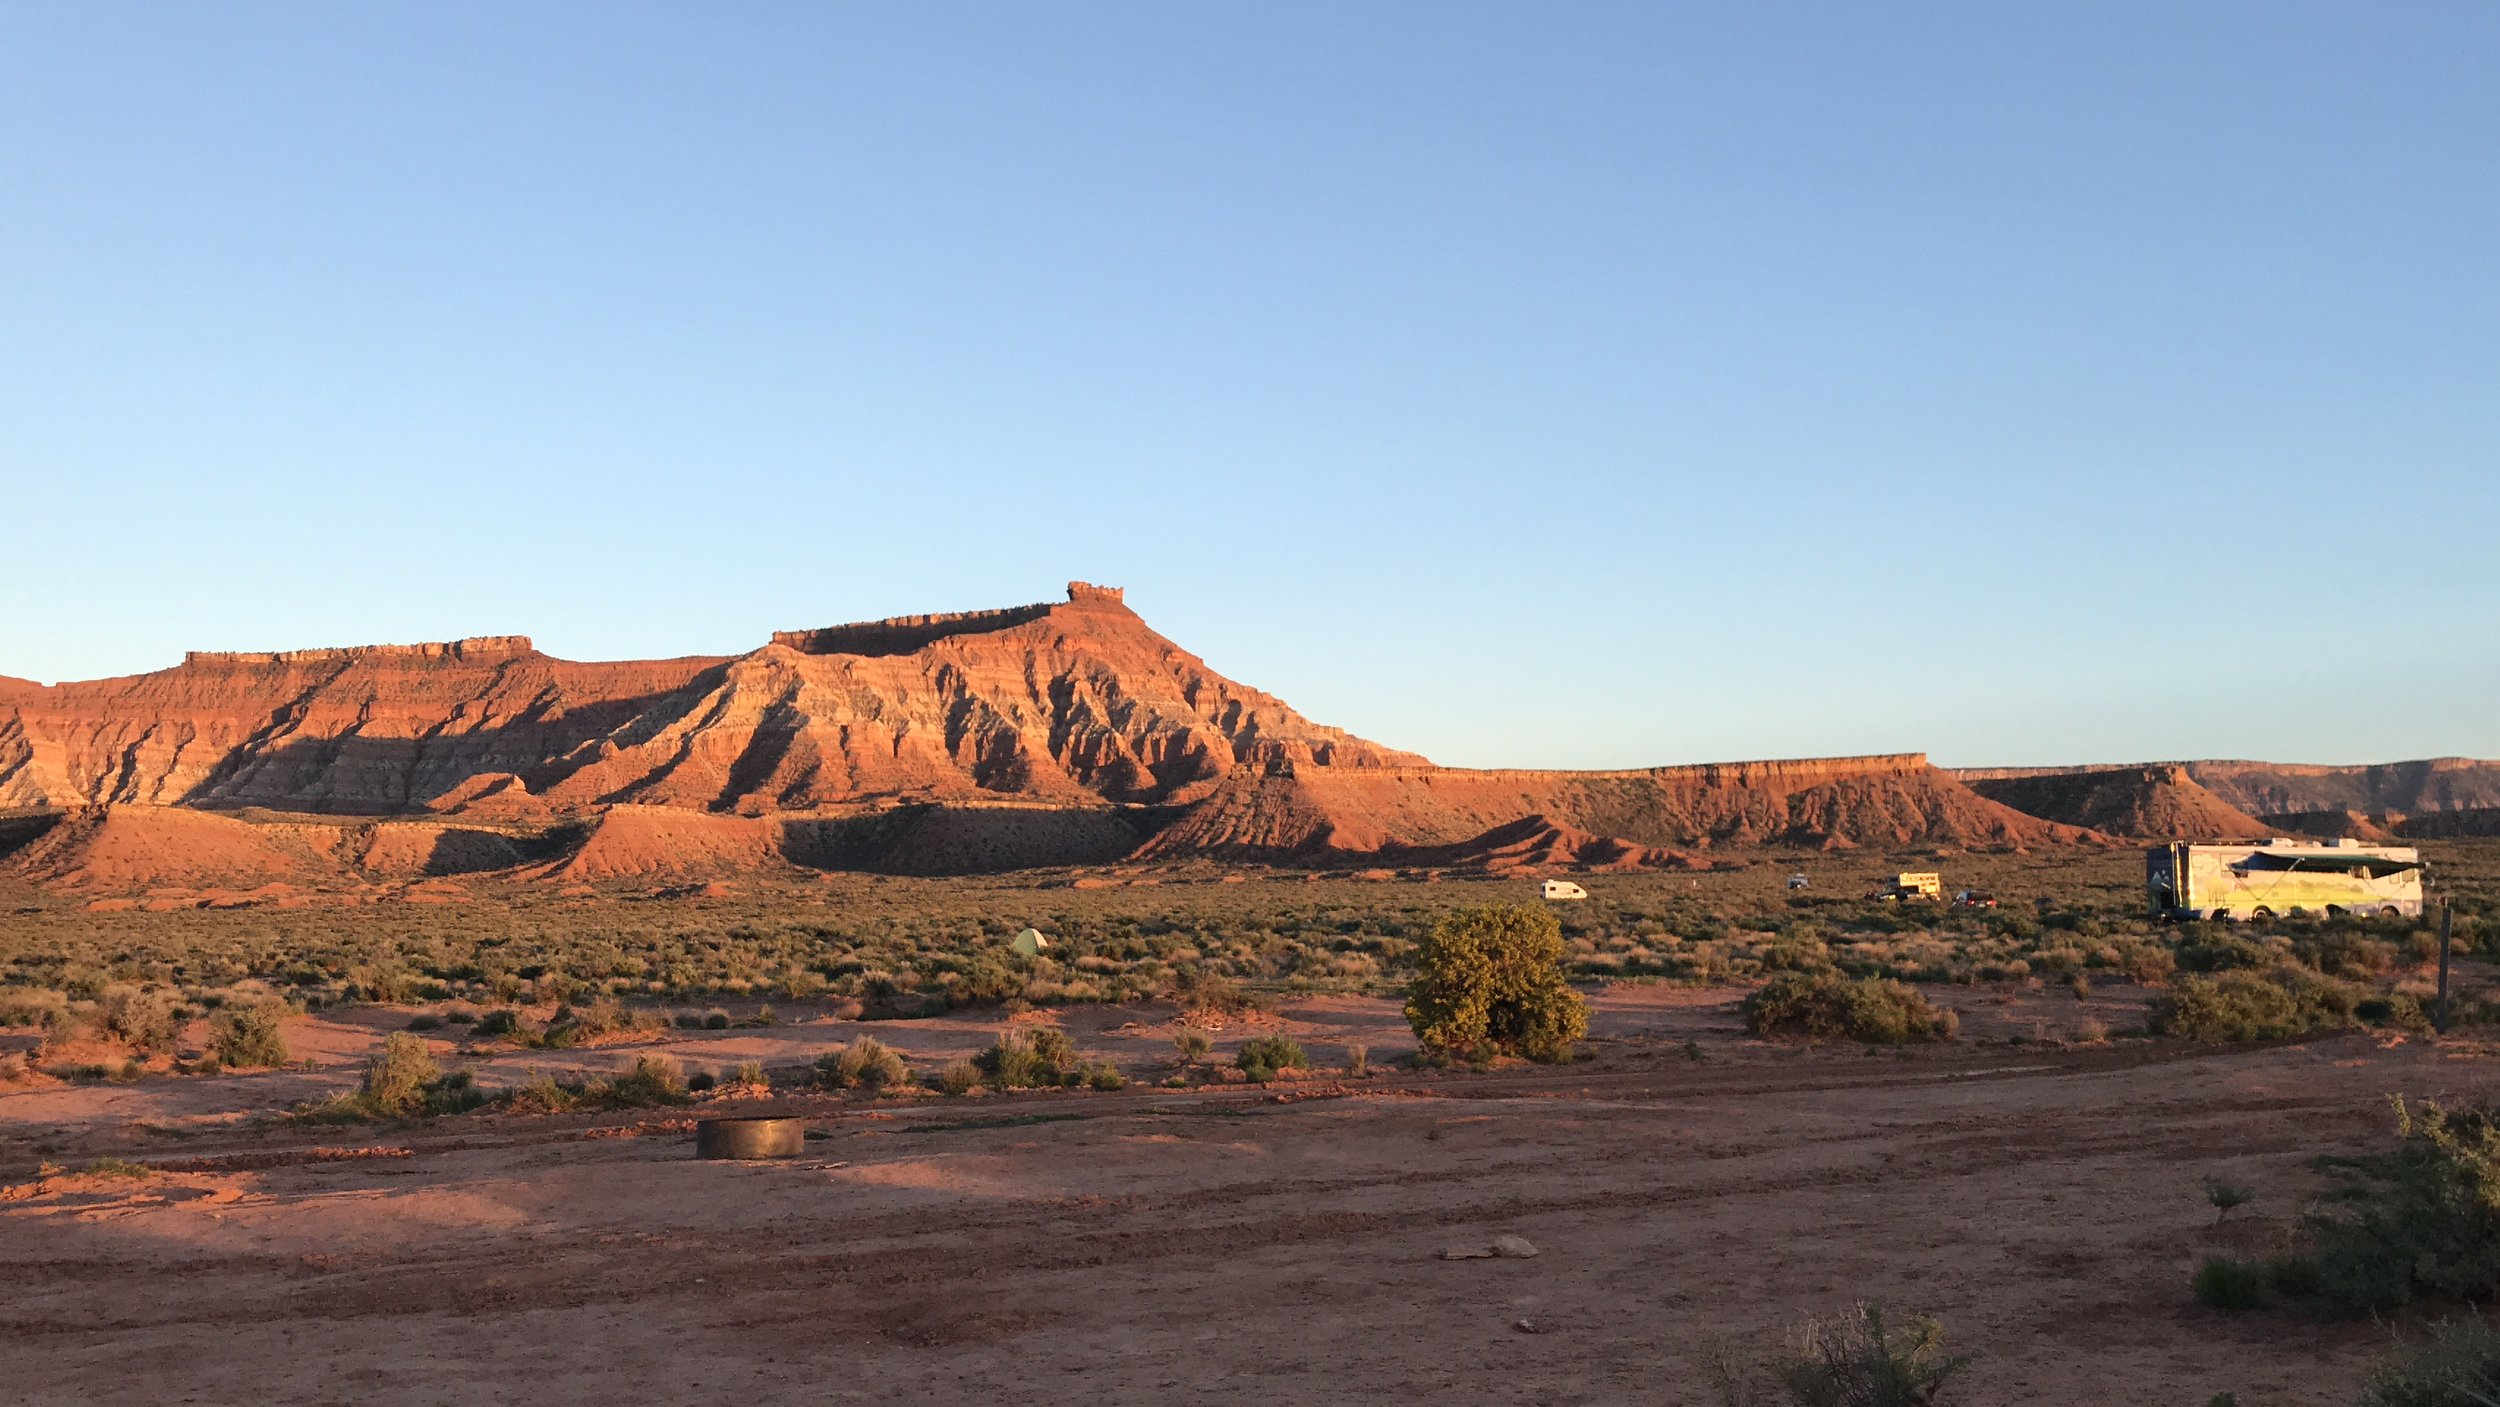 Gooseberry Mesa lit up by the setting sun. That's the Eco Womb on the right!